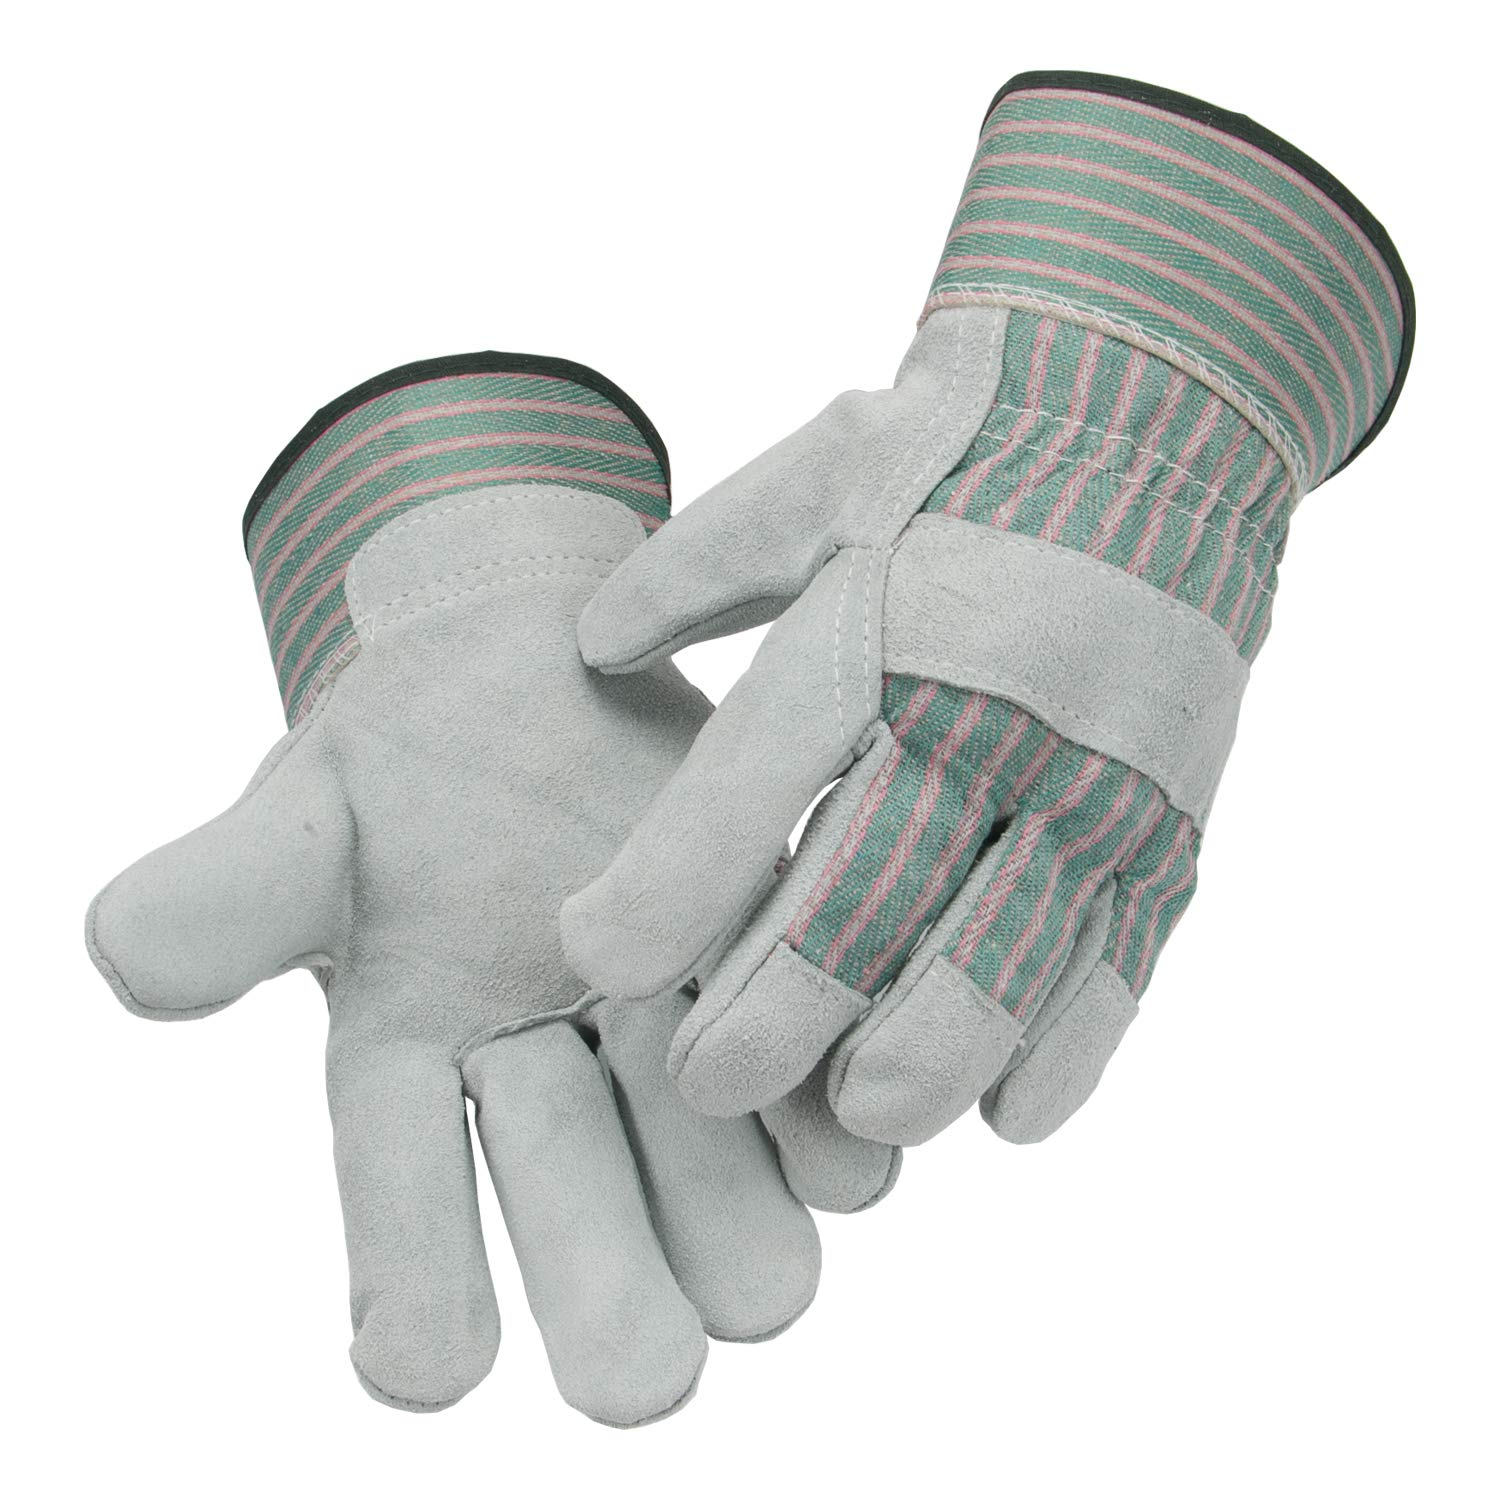 """3 Pairs Laproter Split Leather Design - Heavy Duty Industrial Safety Gloves Size M 10"""" inch AB Grade Cow Split Leather with Safety Cuff (3, M)"""